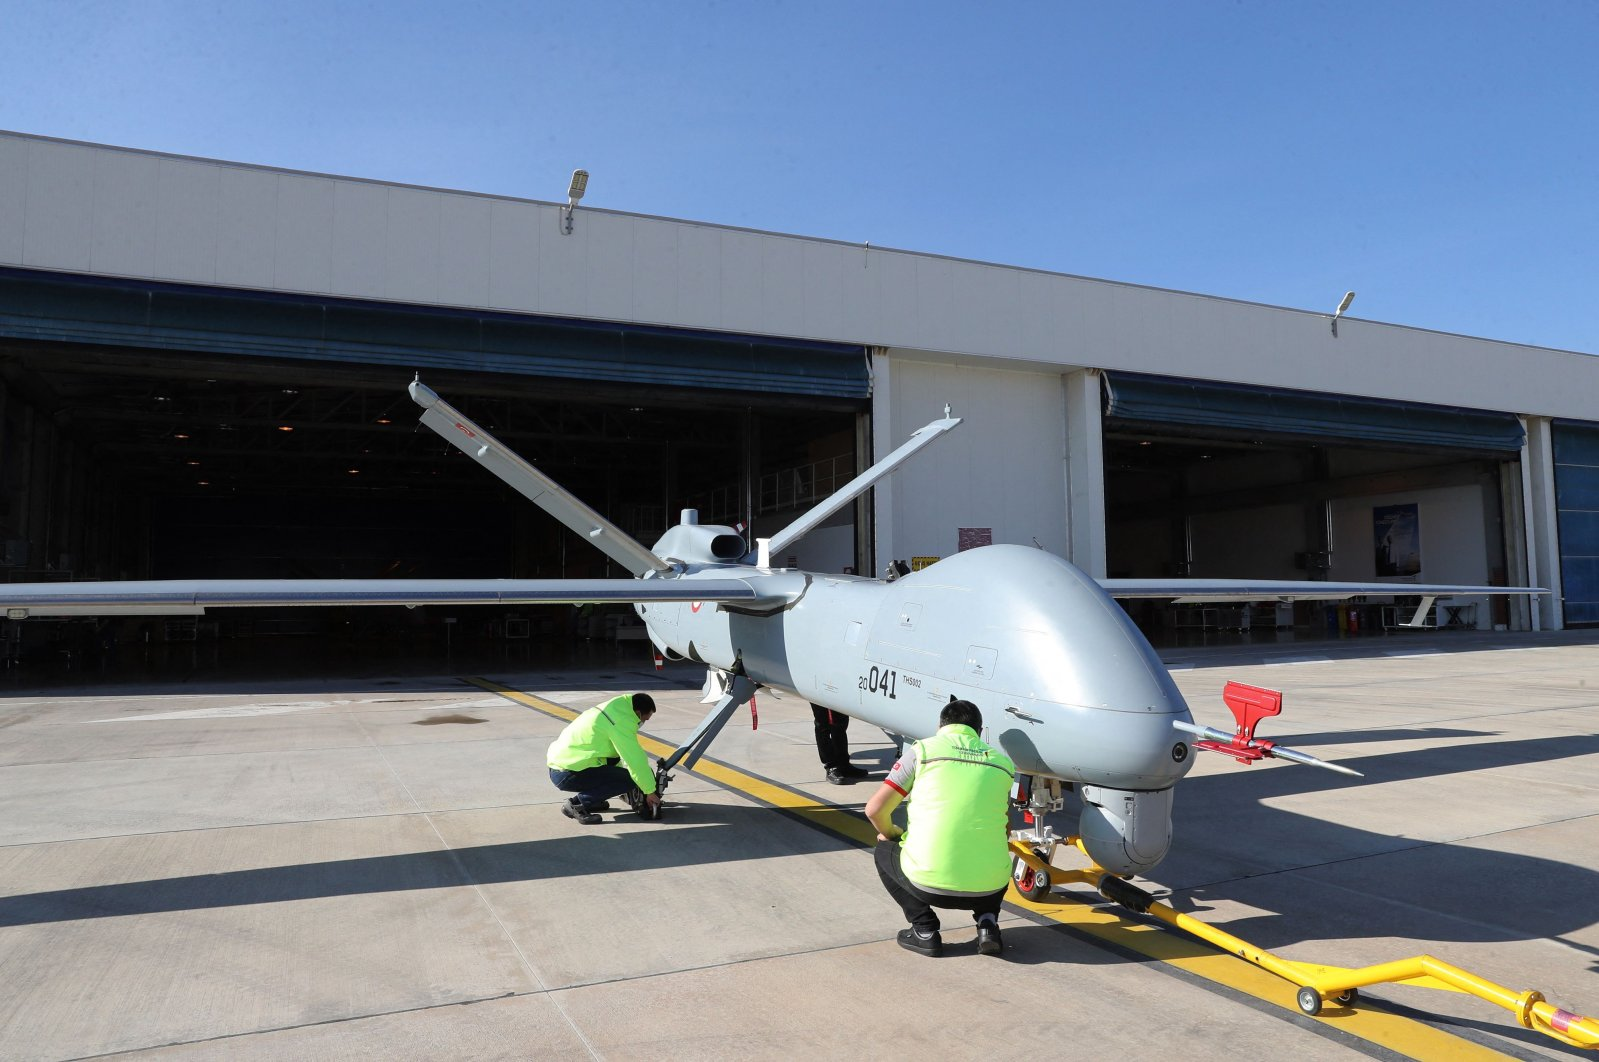 The Anka drone is checked by employees in Ankara, Turkey, March 5, 2021. (AFP Photo)